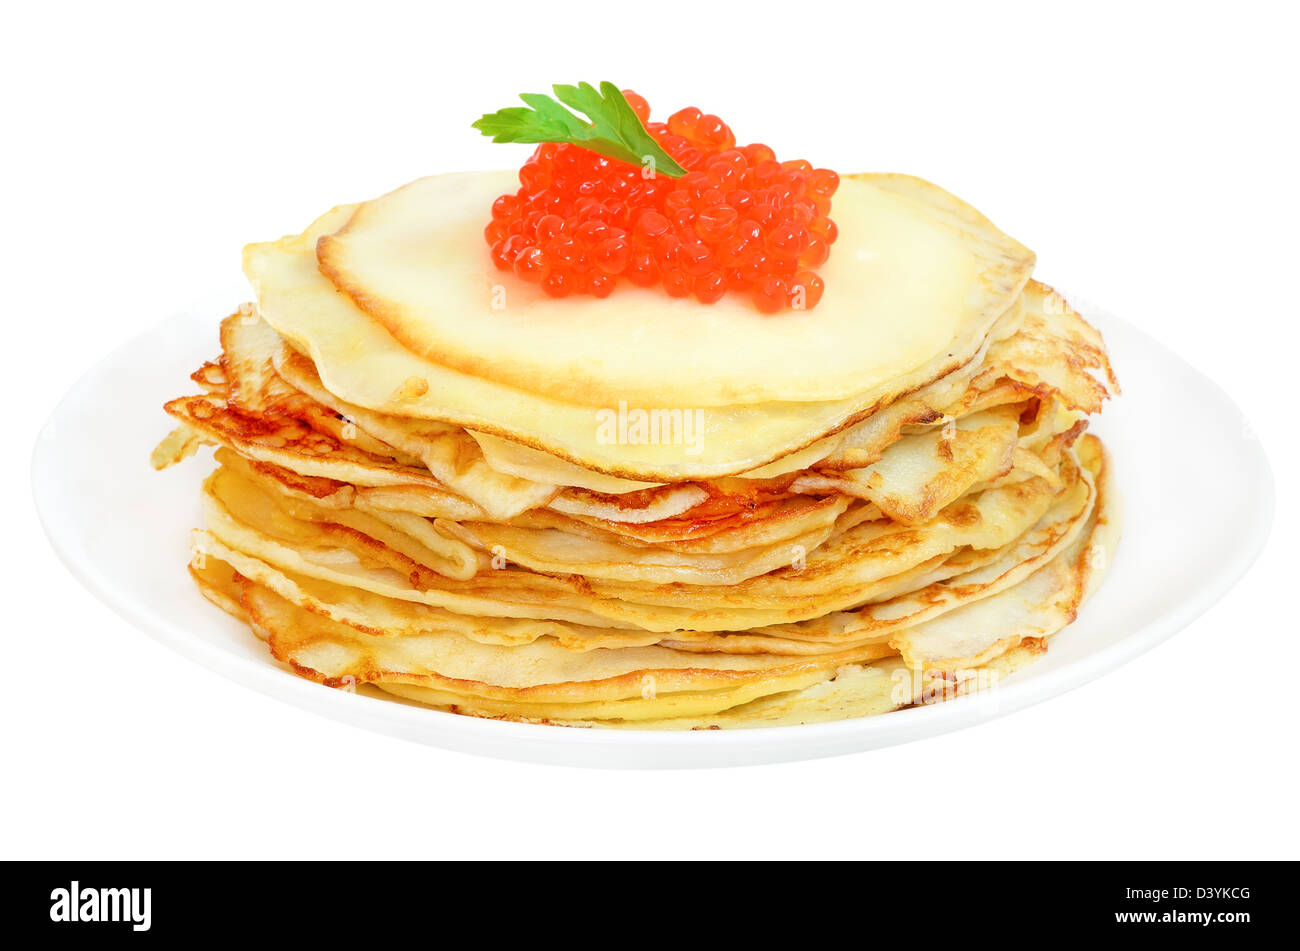 Pancakes with red caviar on a plate isolated on white background - Stock Image